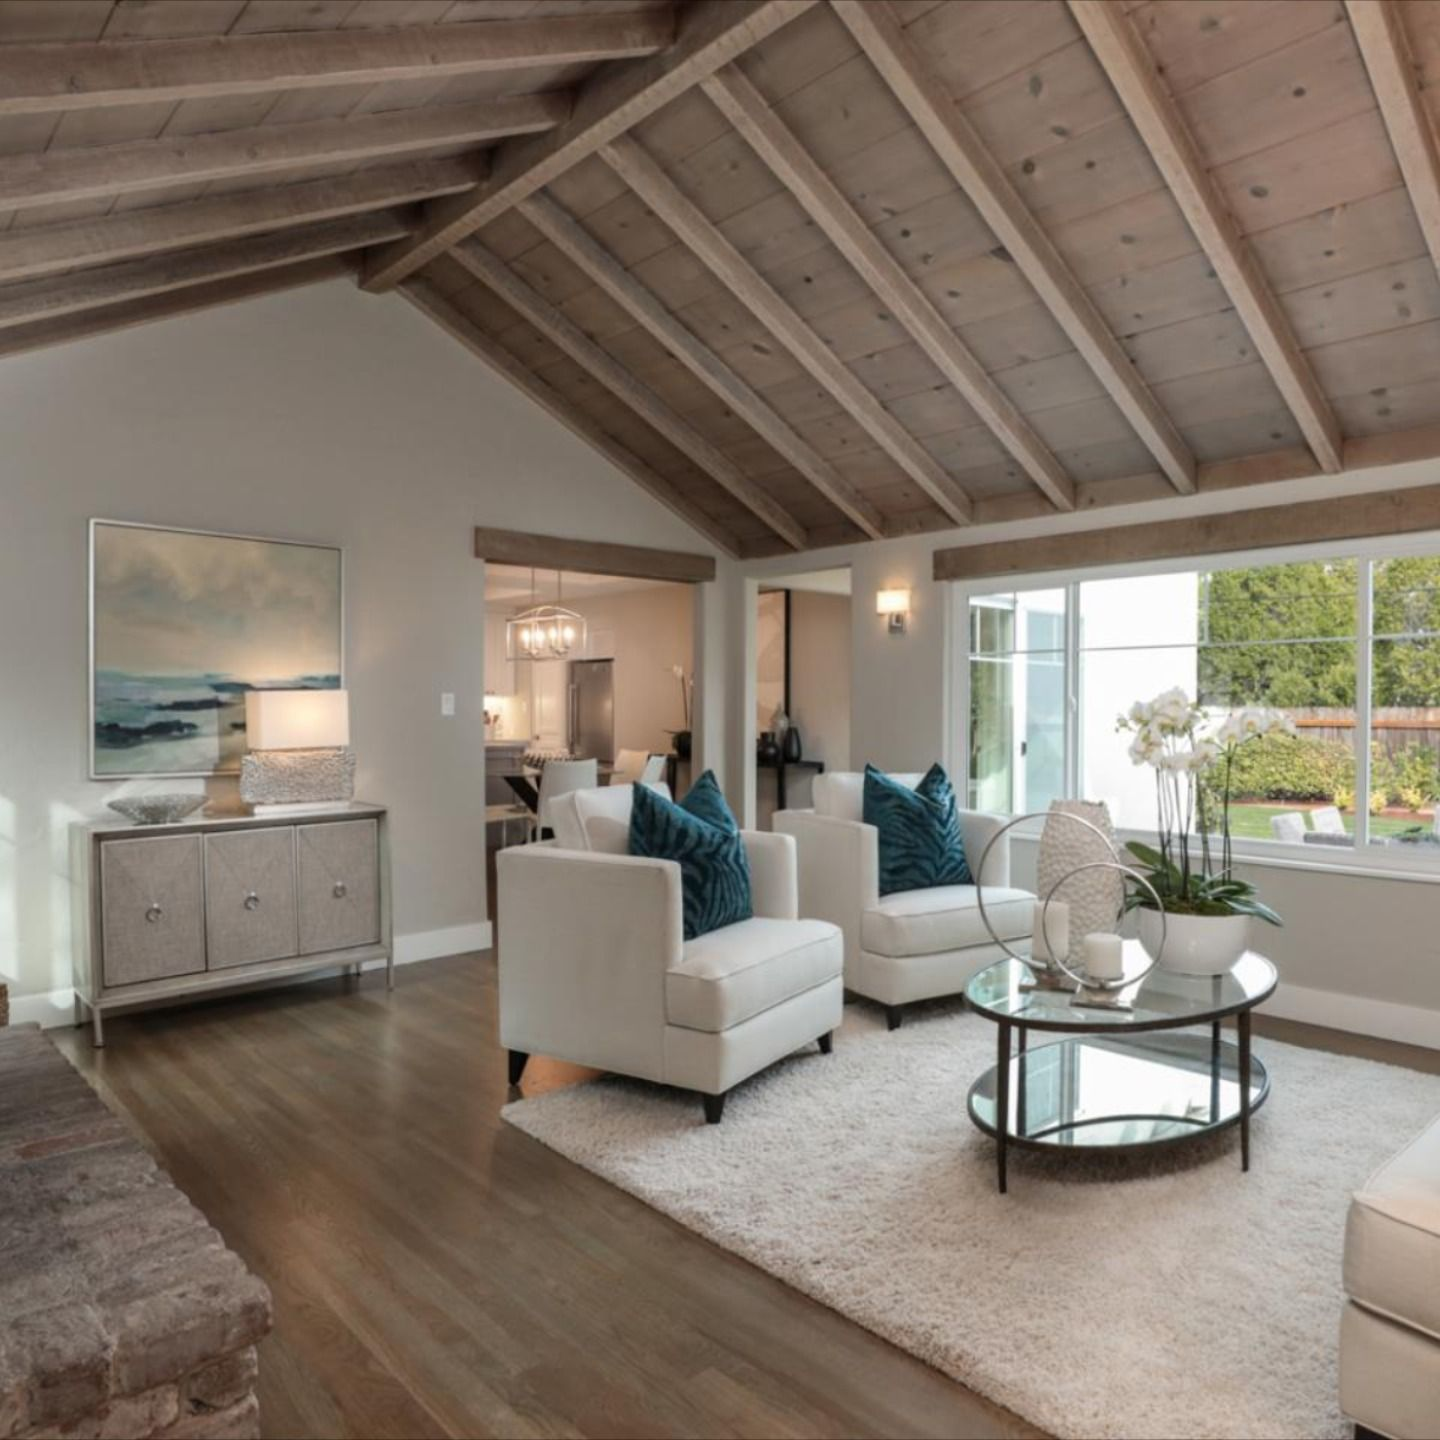 37 Nevada St, Redwood City, CA 94062   $2,895,000  4 Beds   3 Baths   1,820 Sq. Ft.  Courtesy of : Billy Mcnair - Compass  For questions or for private showing contact: Carolyn Botts Compass P: (650) 207-0246 E: carolynb@apr.com  #homeforsaleinRedwoodCity #homesforsale #RedwoodCityHomes #houseforsale #forsale #realtor #compass #realestate #luxuryrealestate #realestateagent #dreamhome #beautifulhome #homebuyers #housingmarket #siliconvalleyhomes #siliconvalley #carolynbotts #carolynbottsrealtor